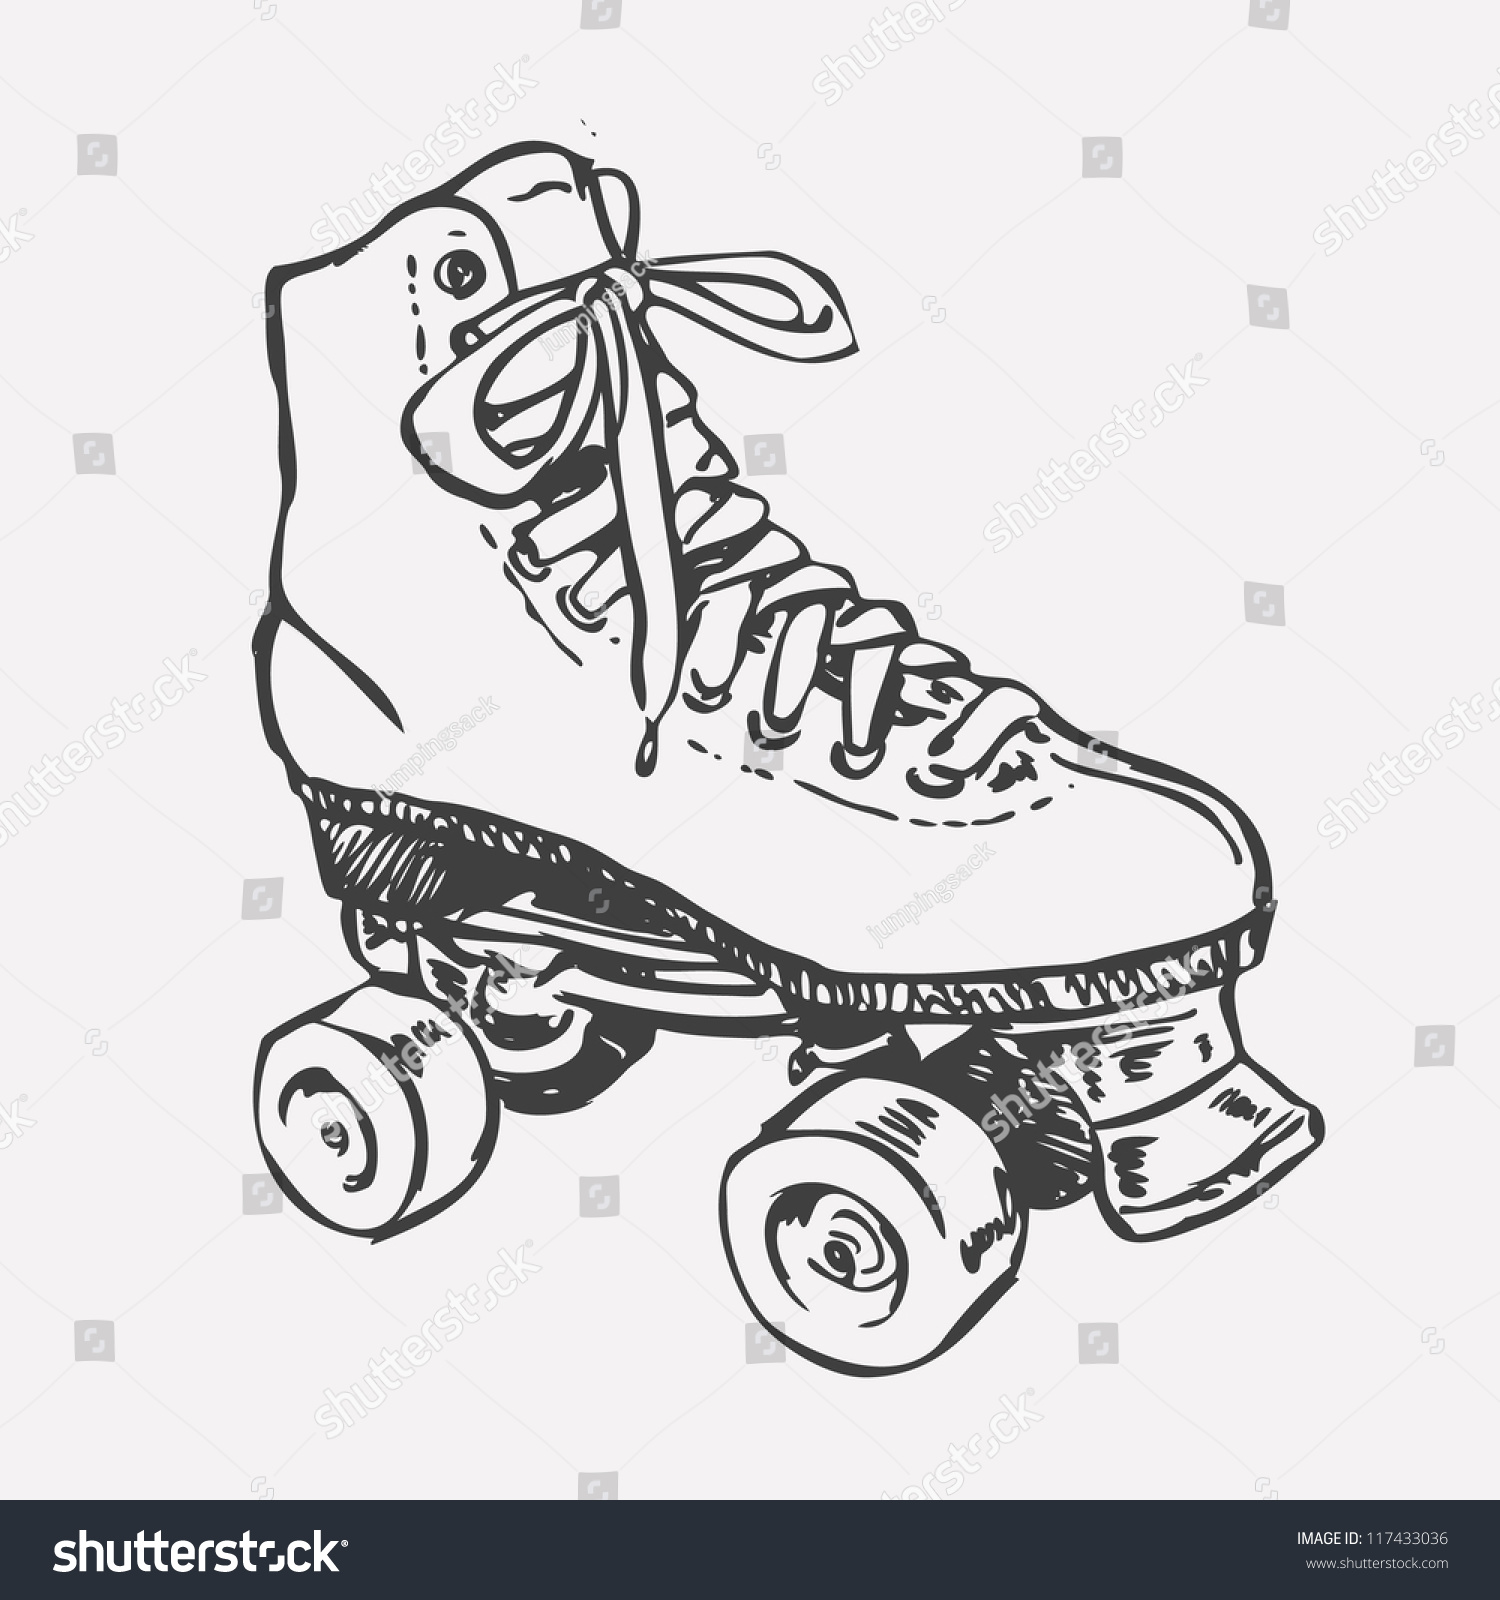 quad skate clip art - photo #23